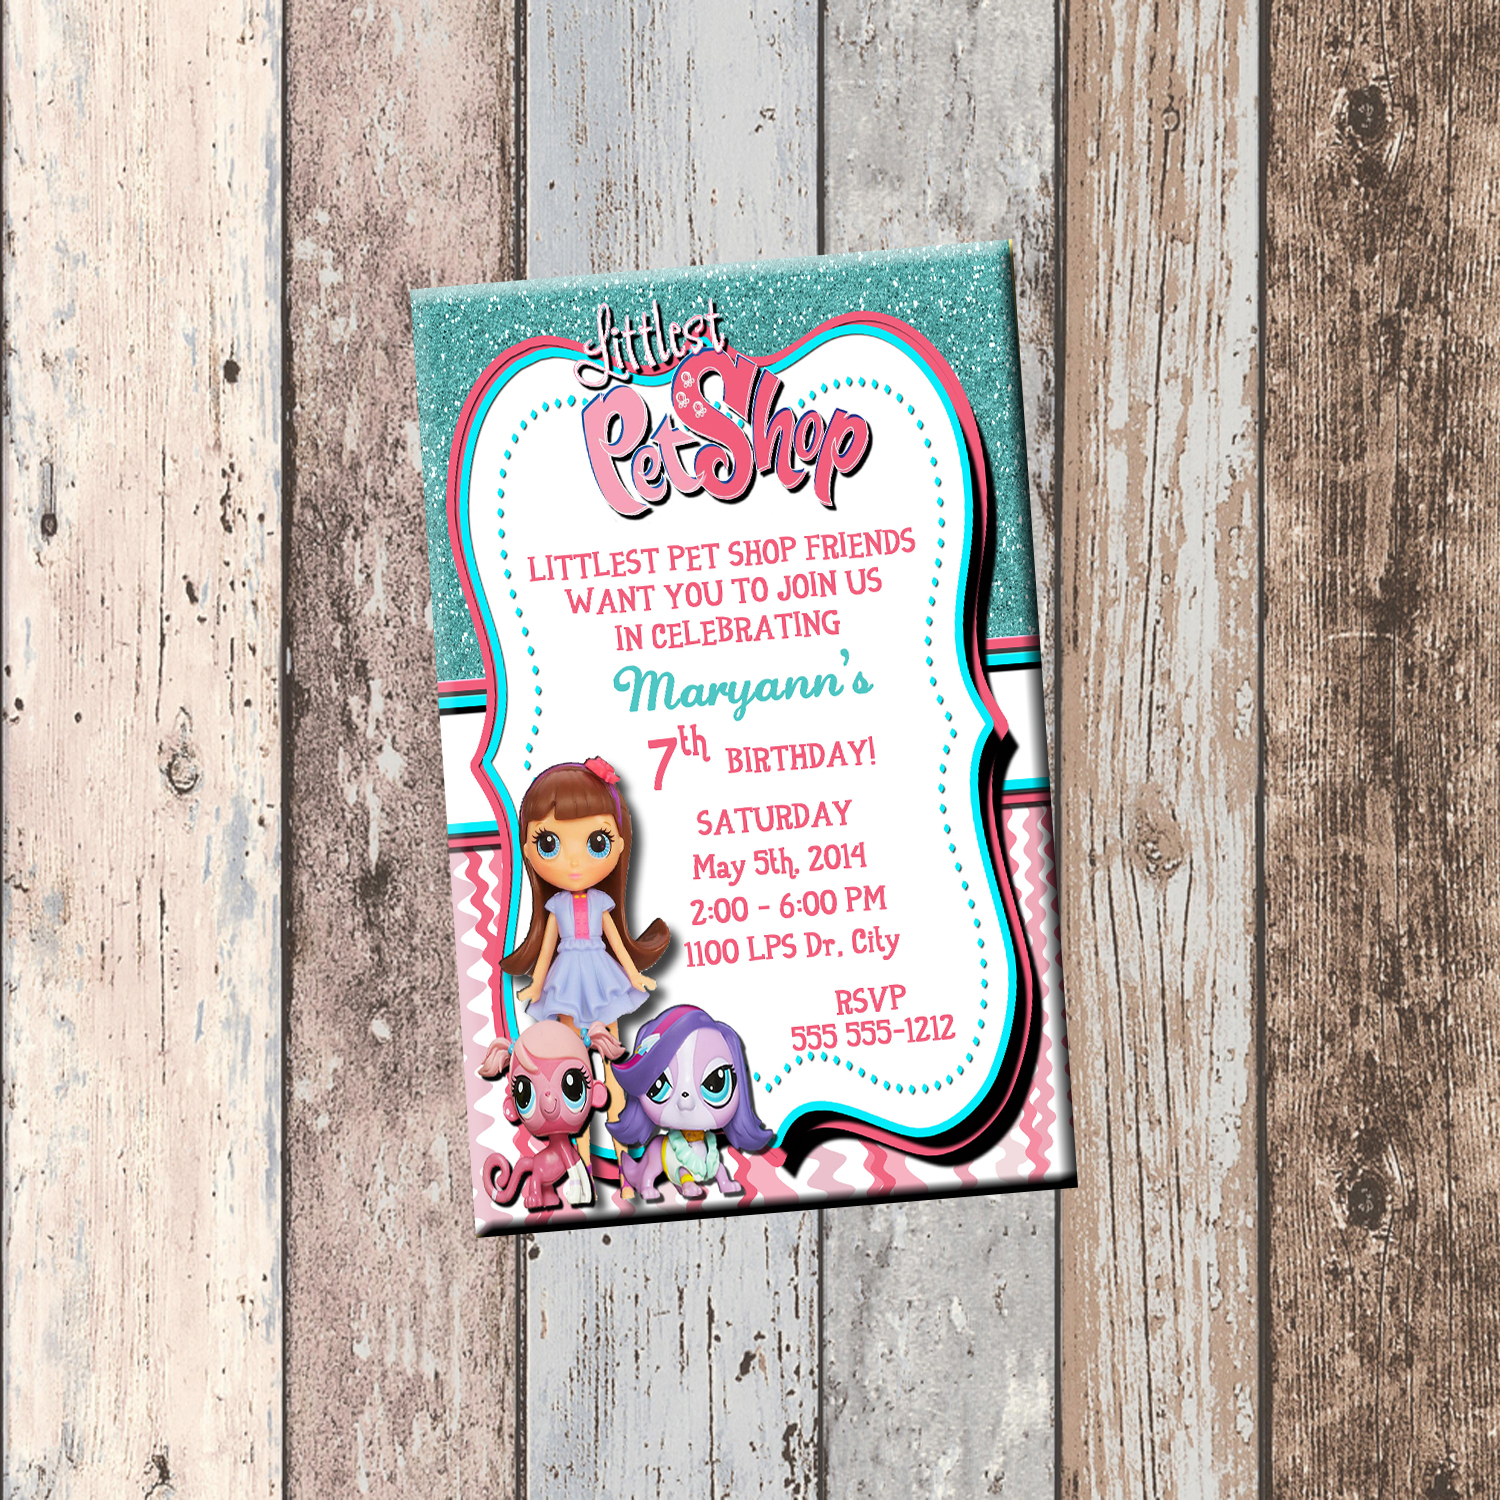 Littlest Pet Shop Personalized Birthday Invitation 1 Sided Card Party LPS On Storenvy